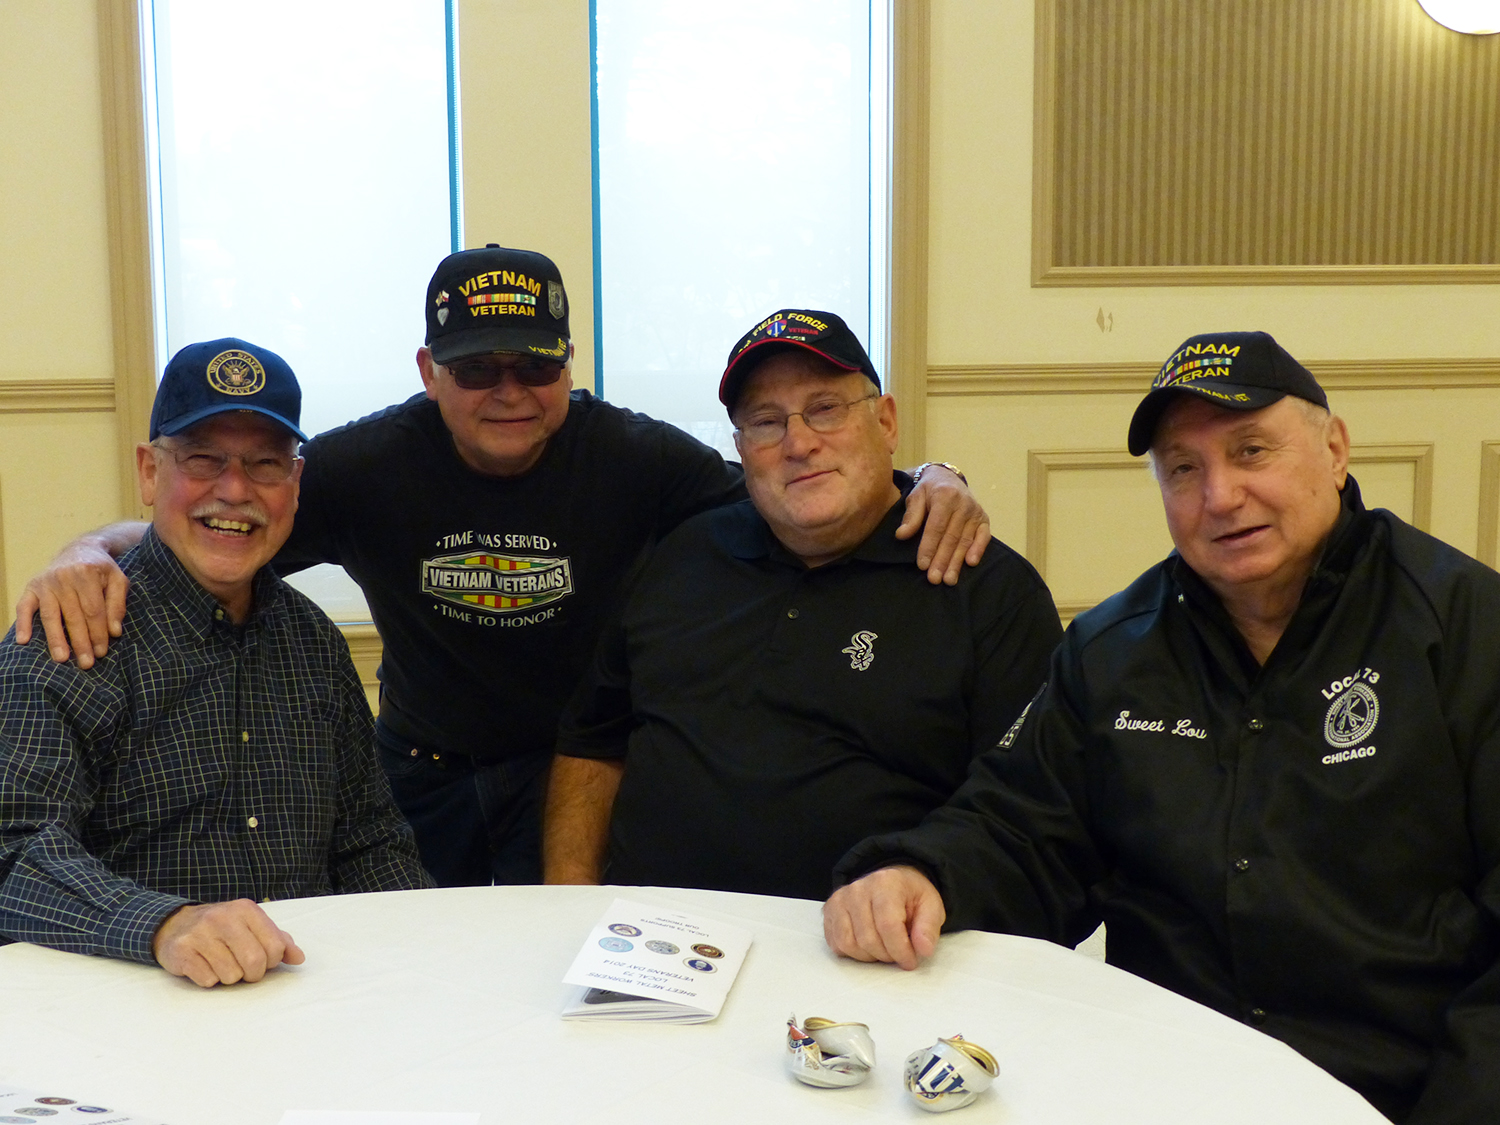 Retired Sheet Metal Workers Local 73 members